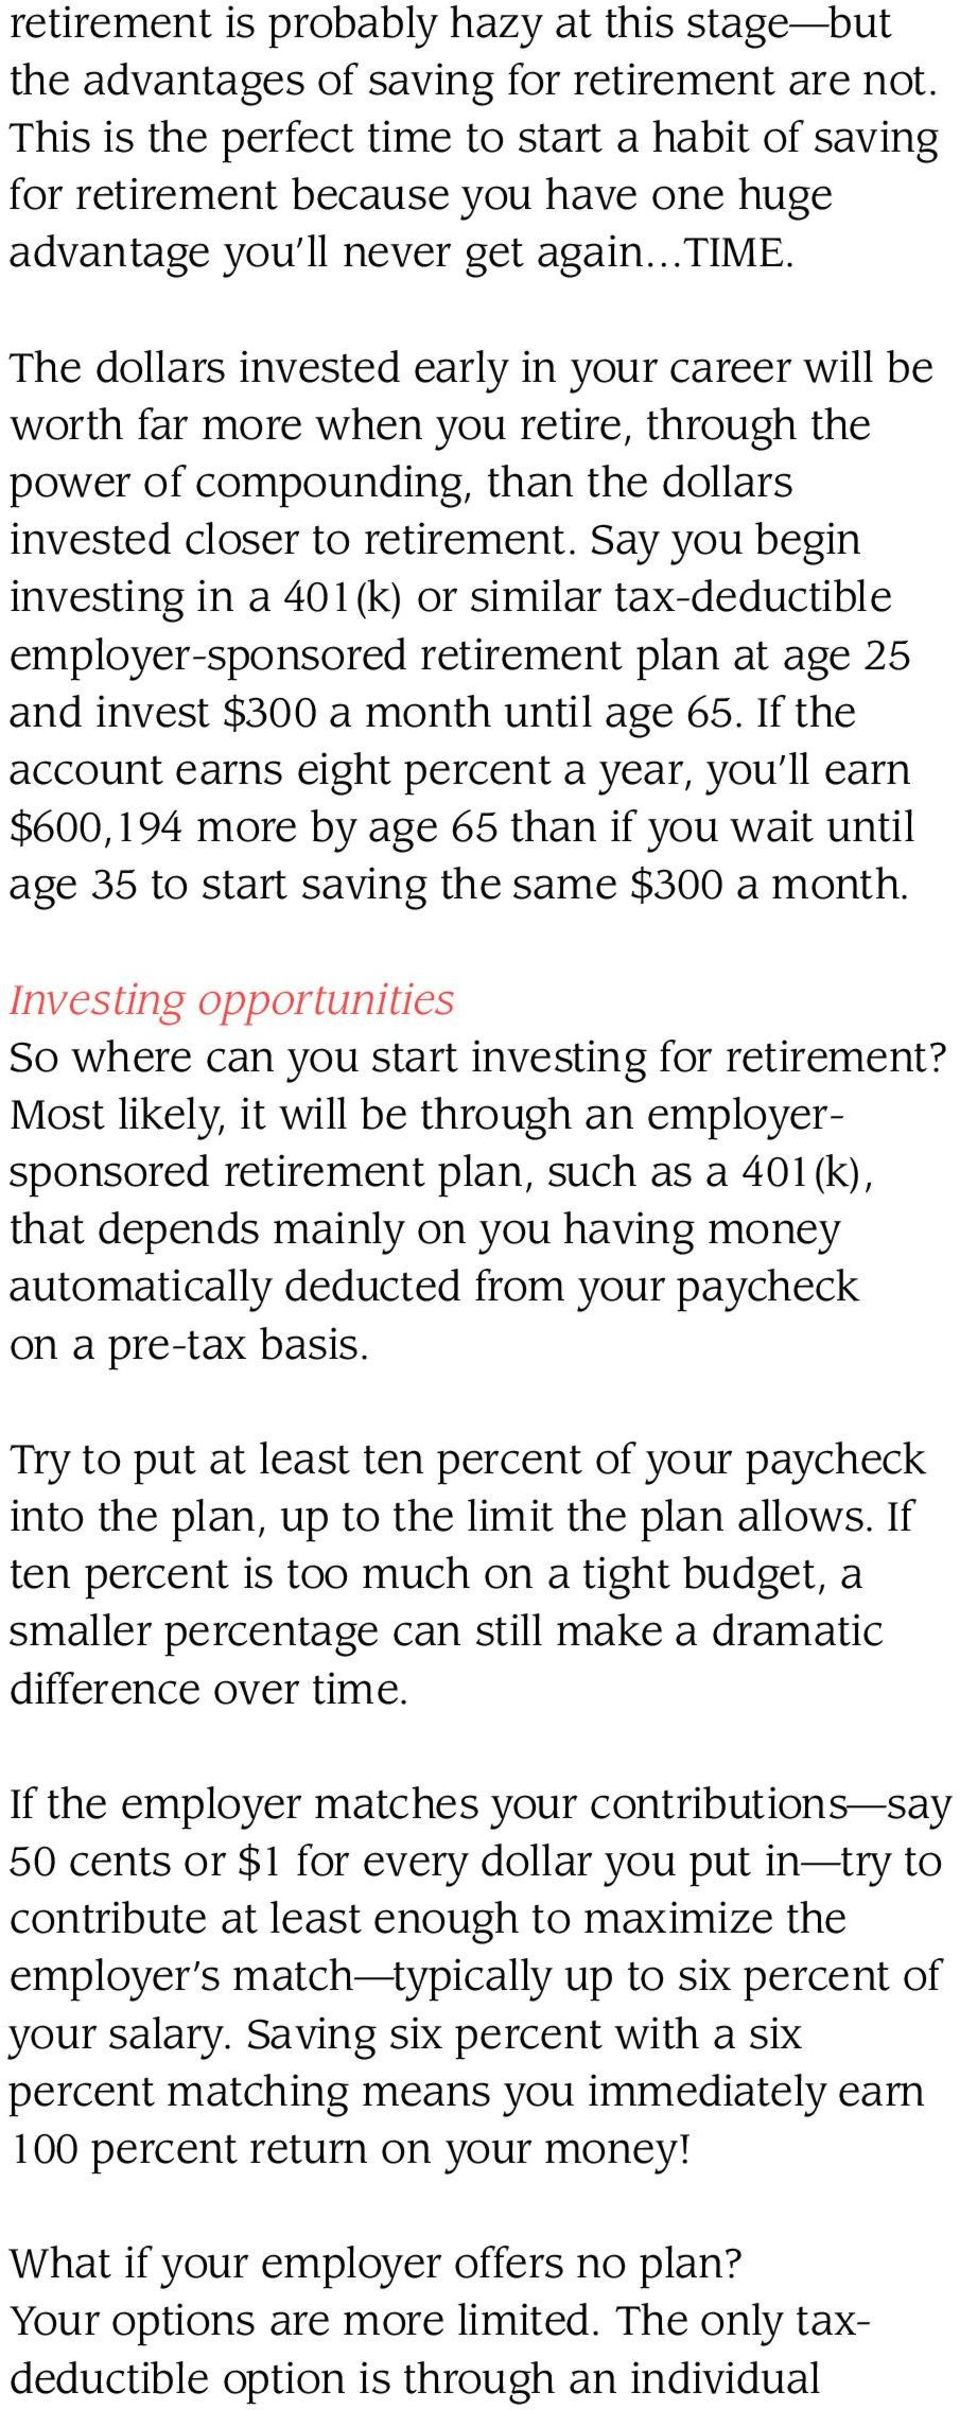 The dollars invested early in your career will be worth far more when you retire, through the power of compounding, than the dollars i nvested closer to retirement.